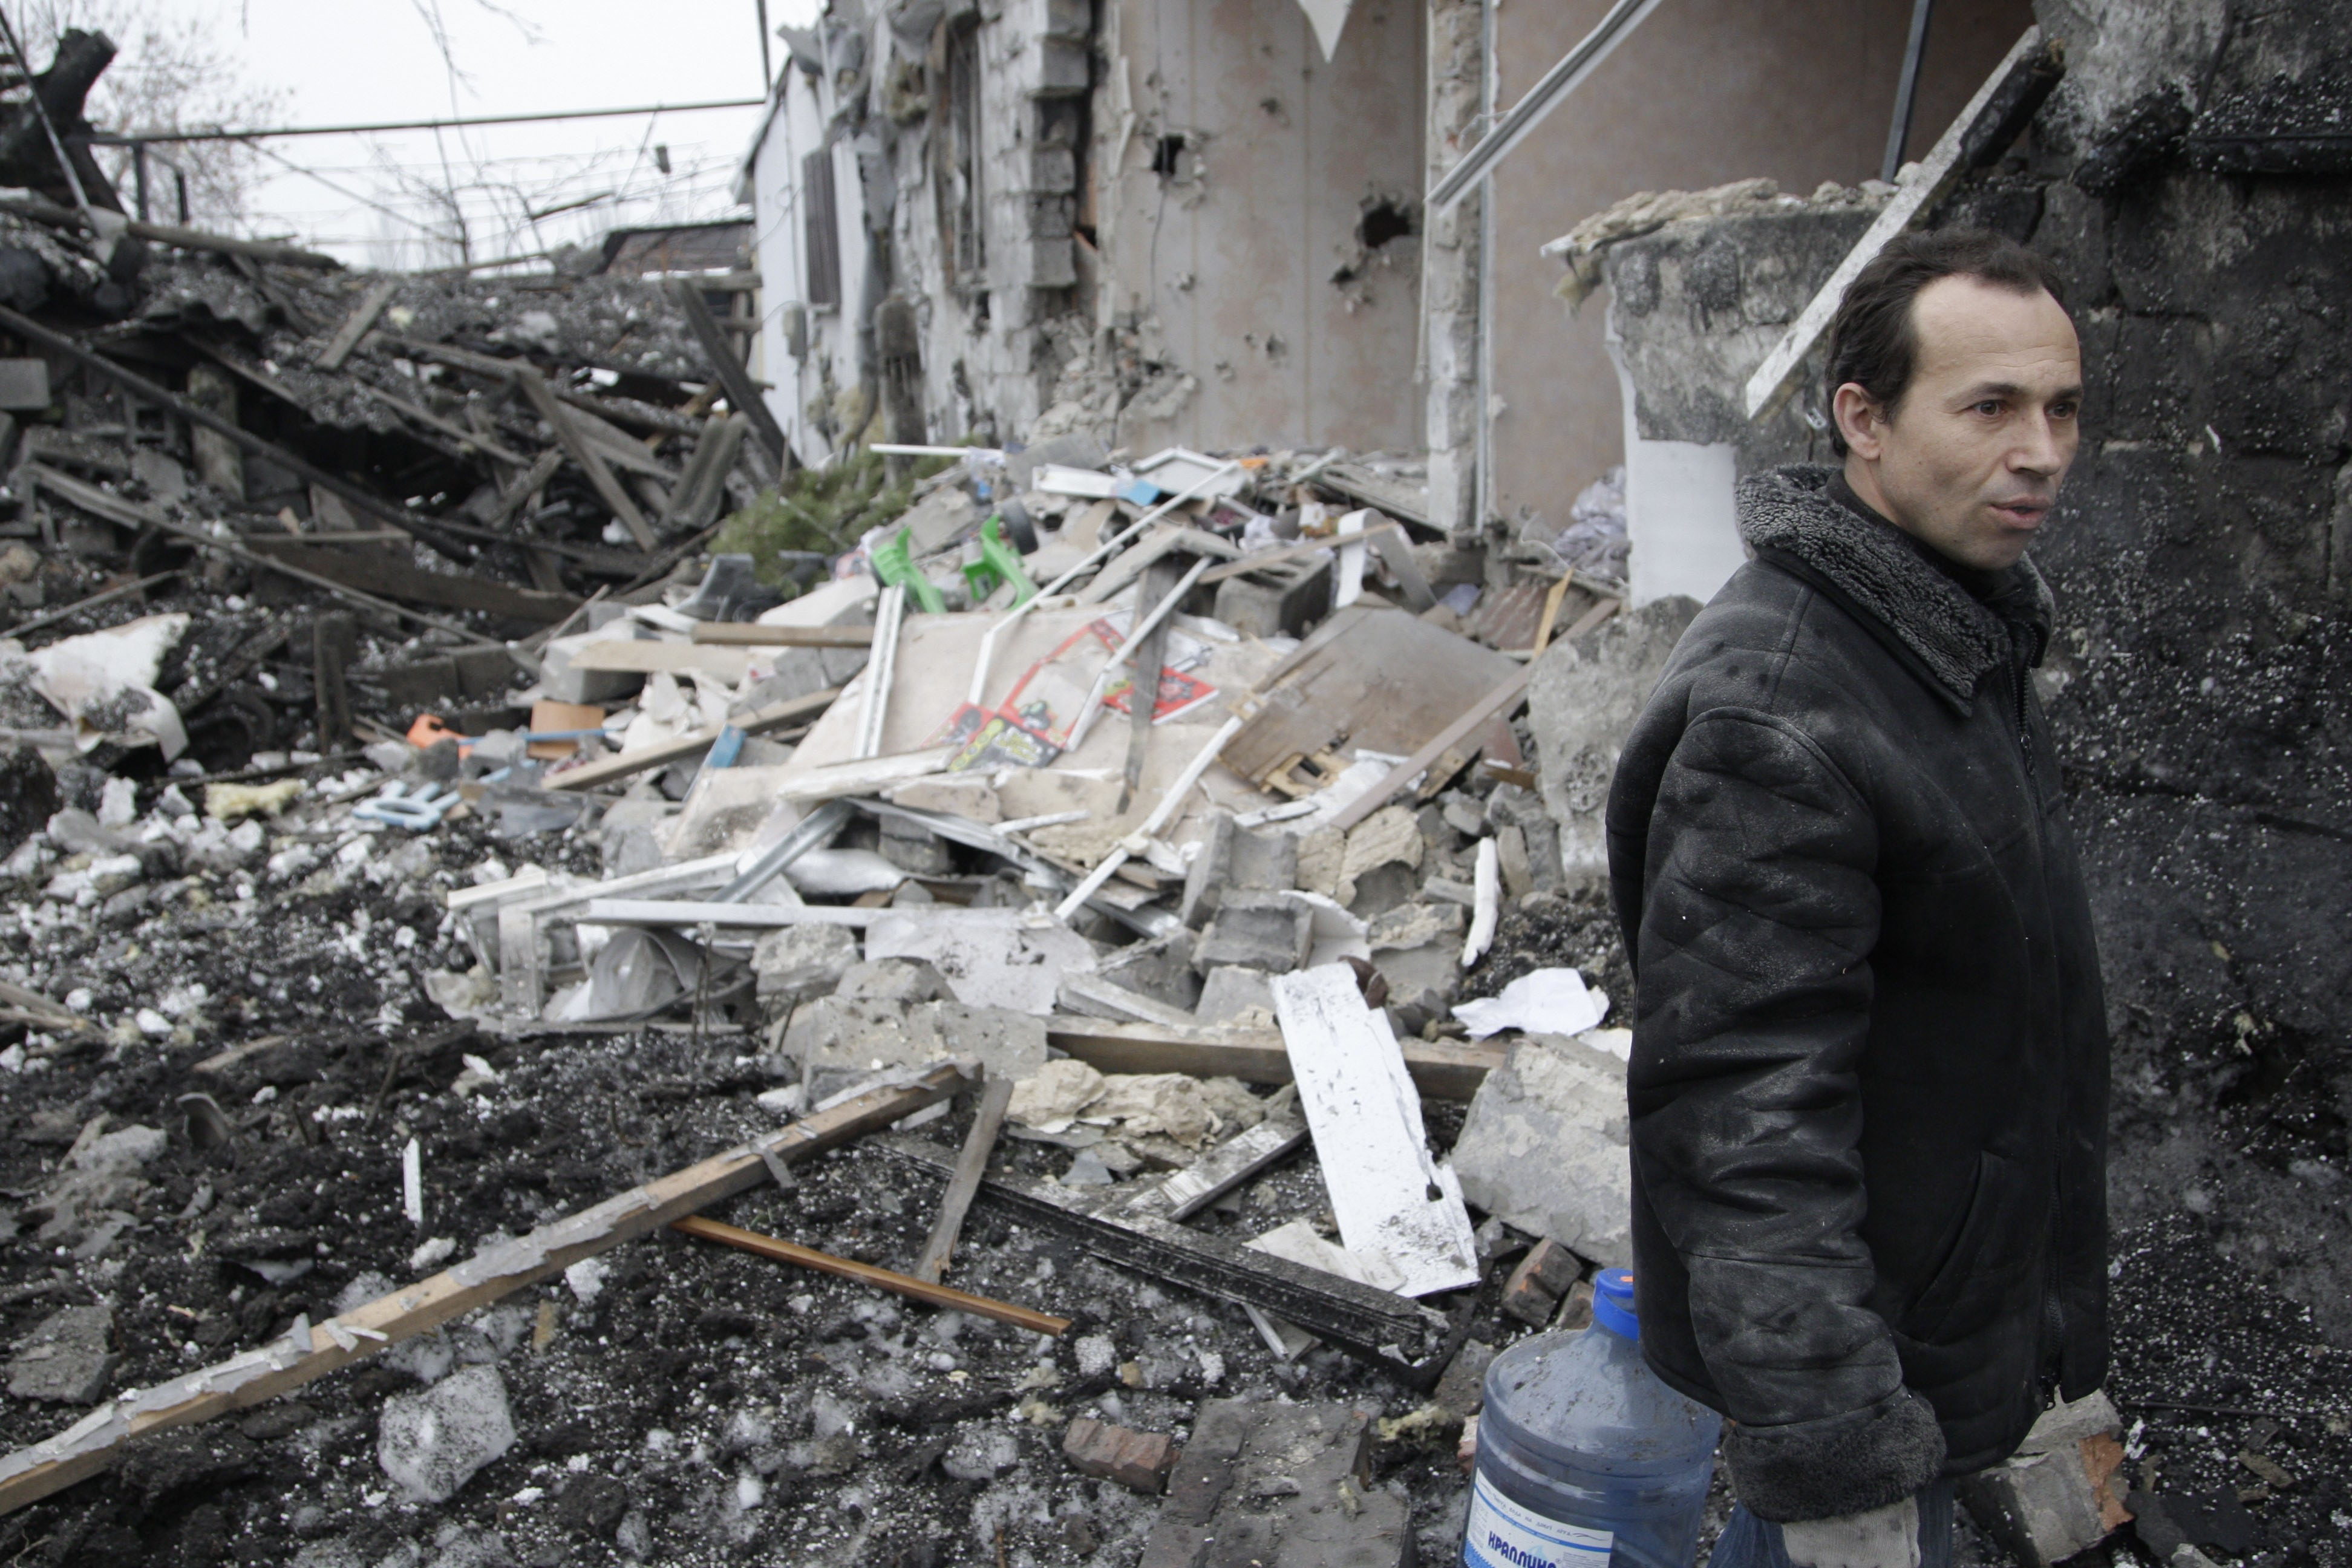 Residential areas damaged during clashes in Donetsk